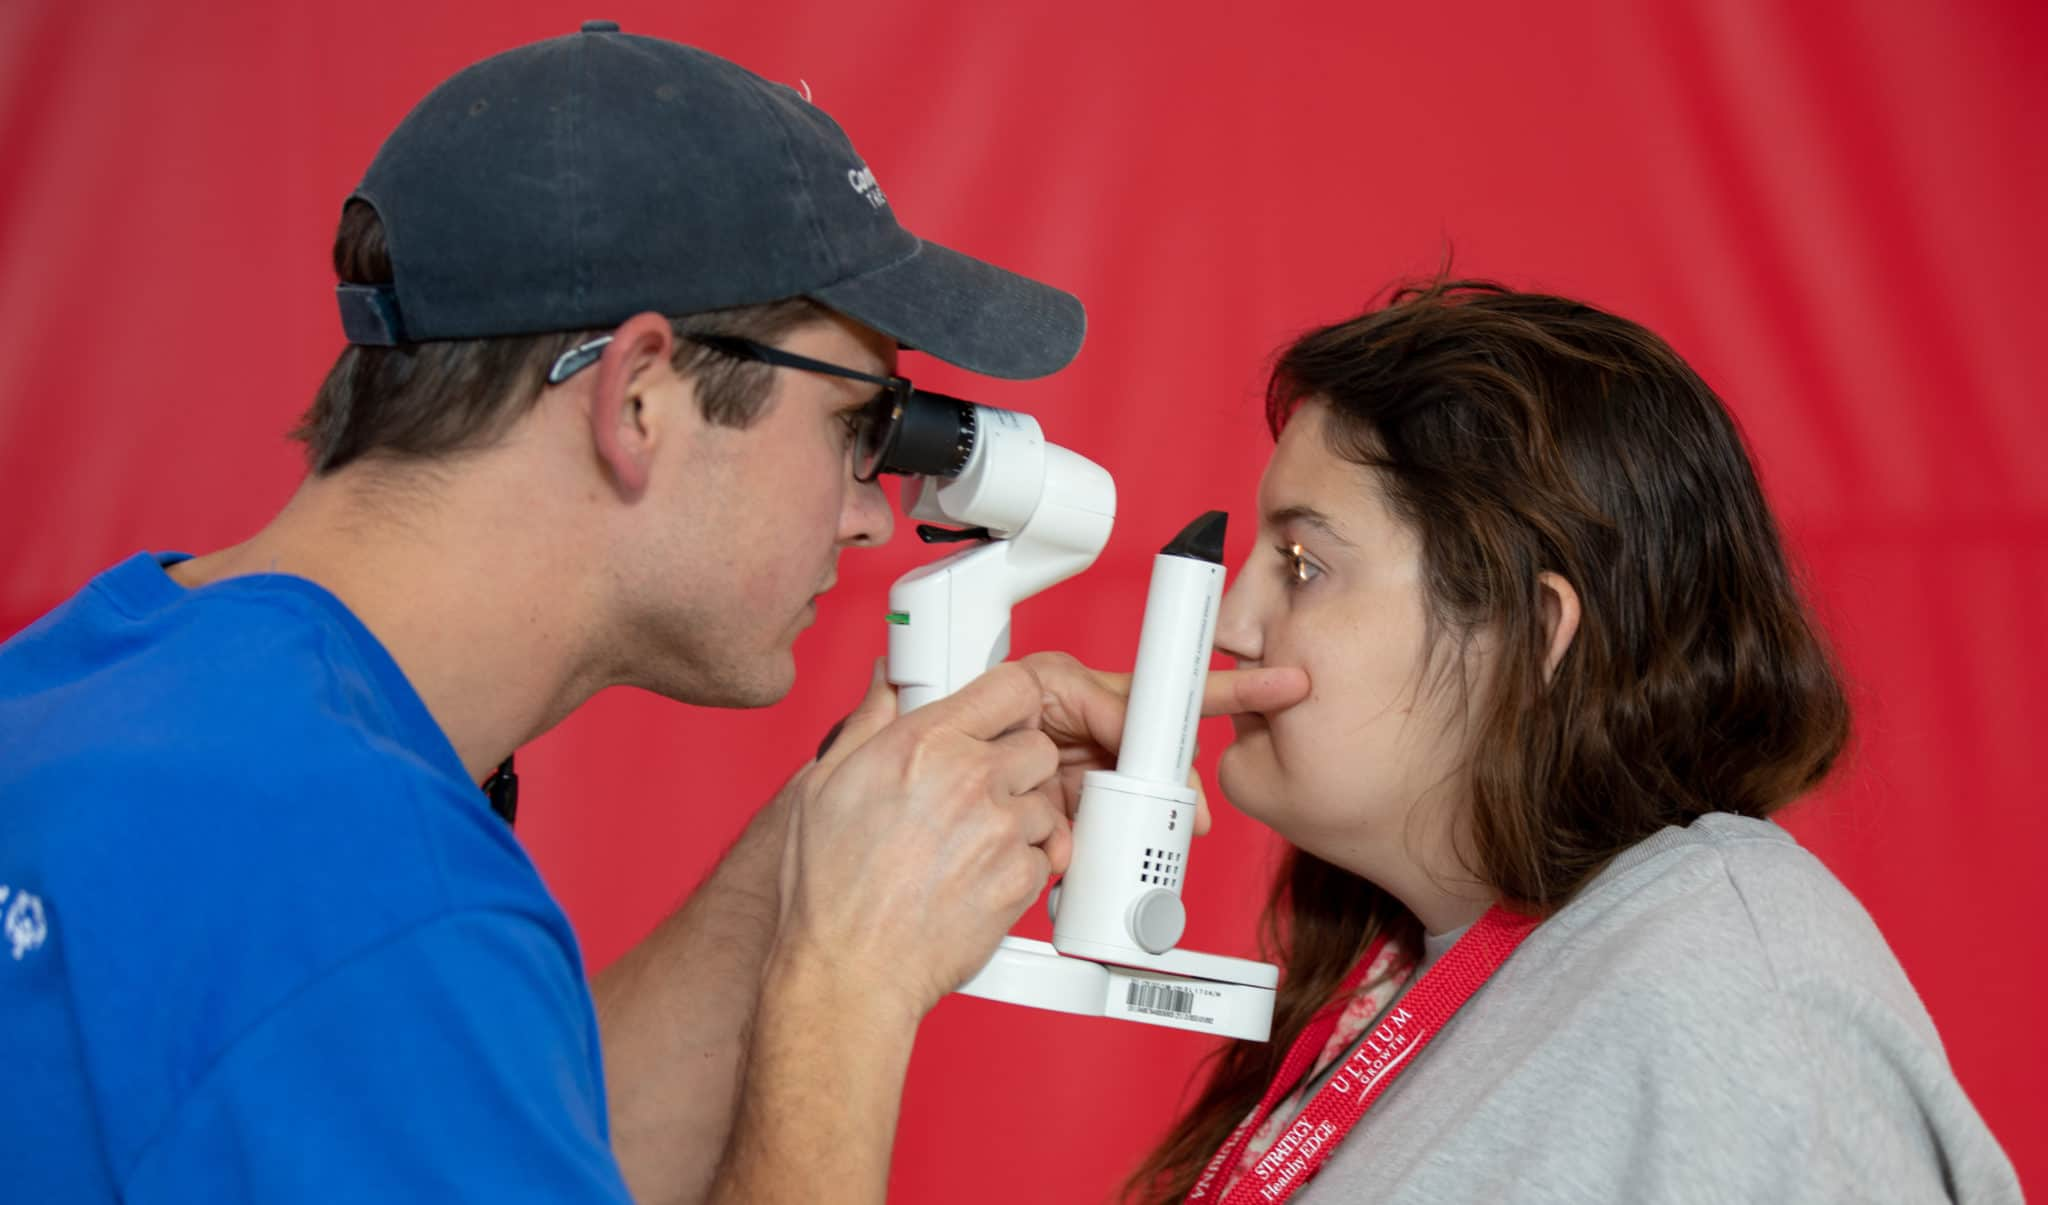 A volunteer uses eye exam equipment to look into the eyes of an athlete